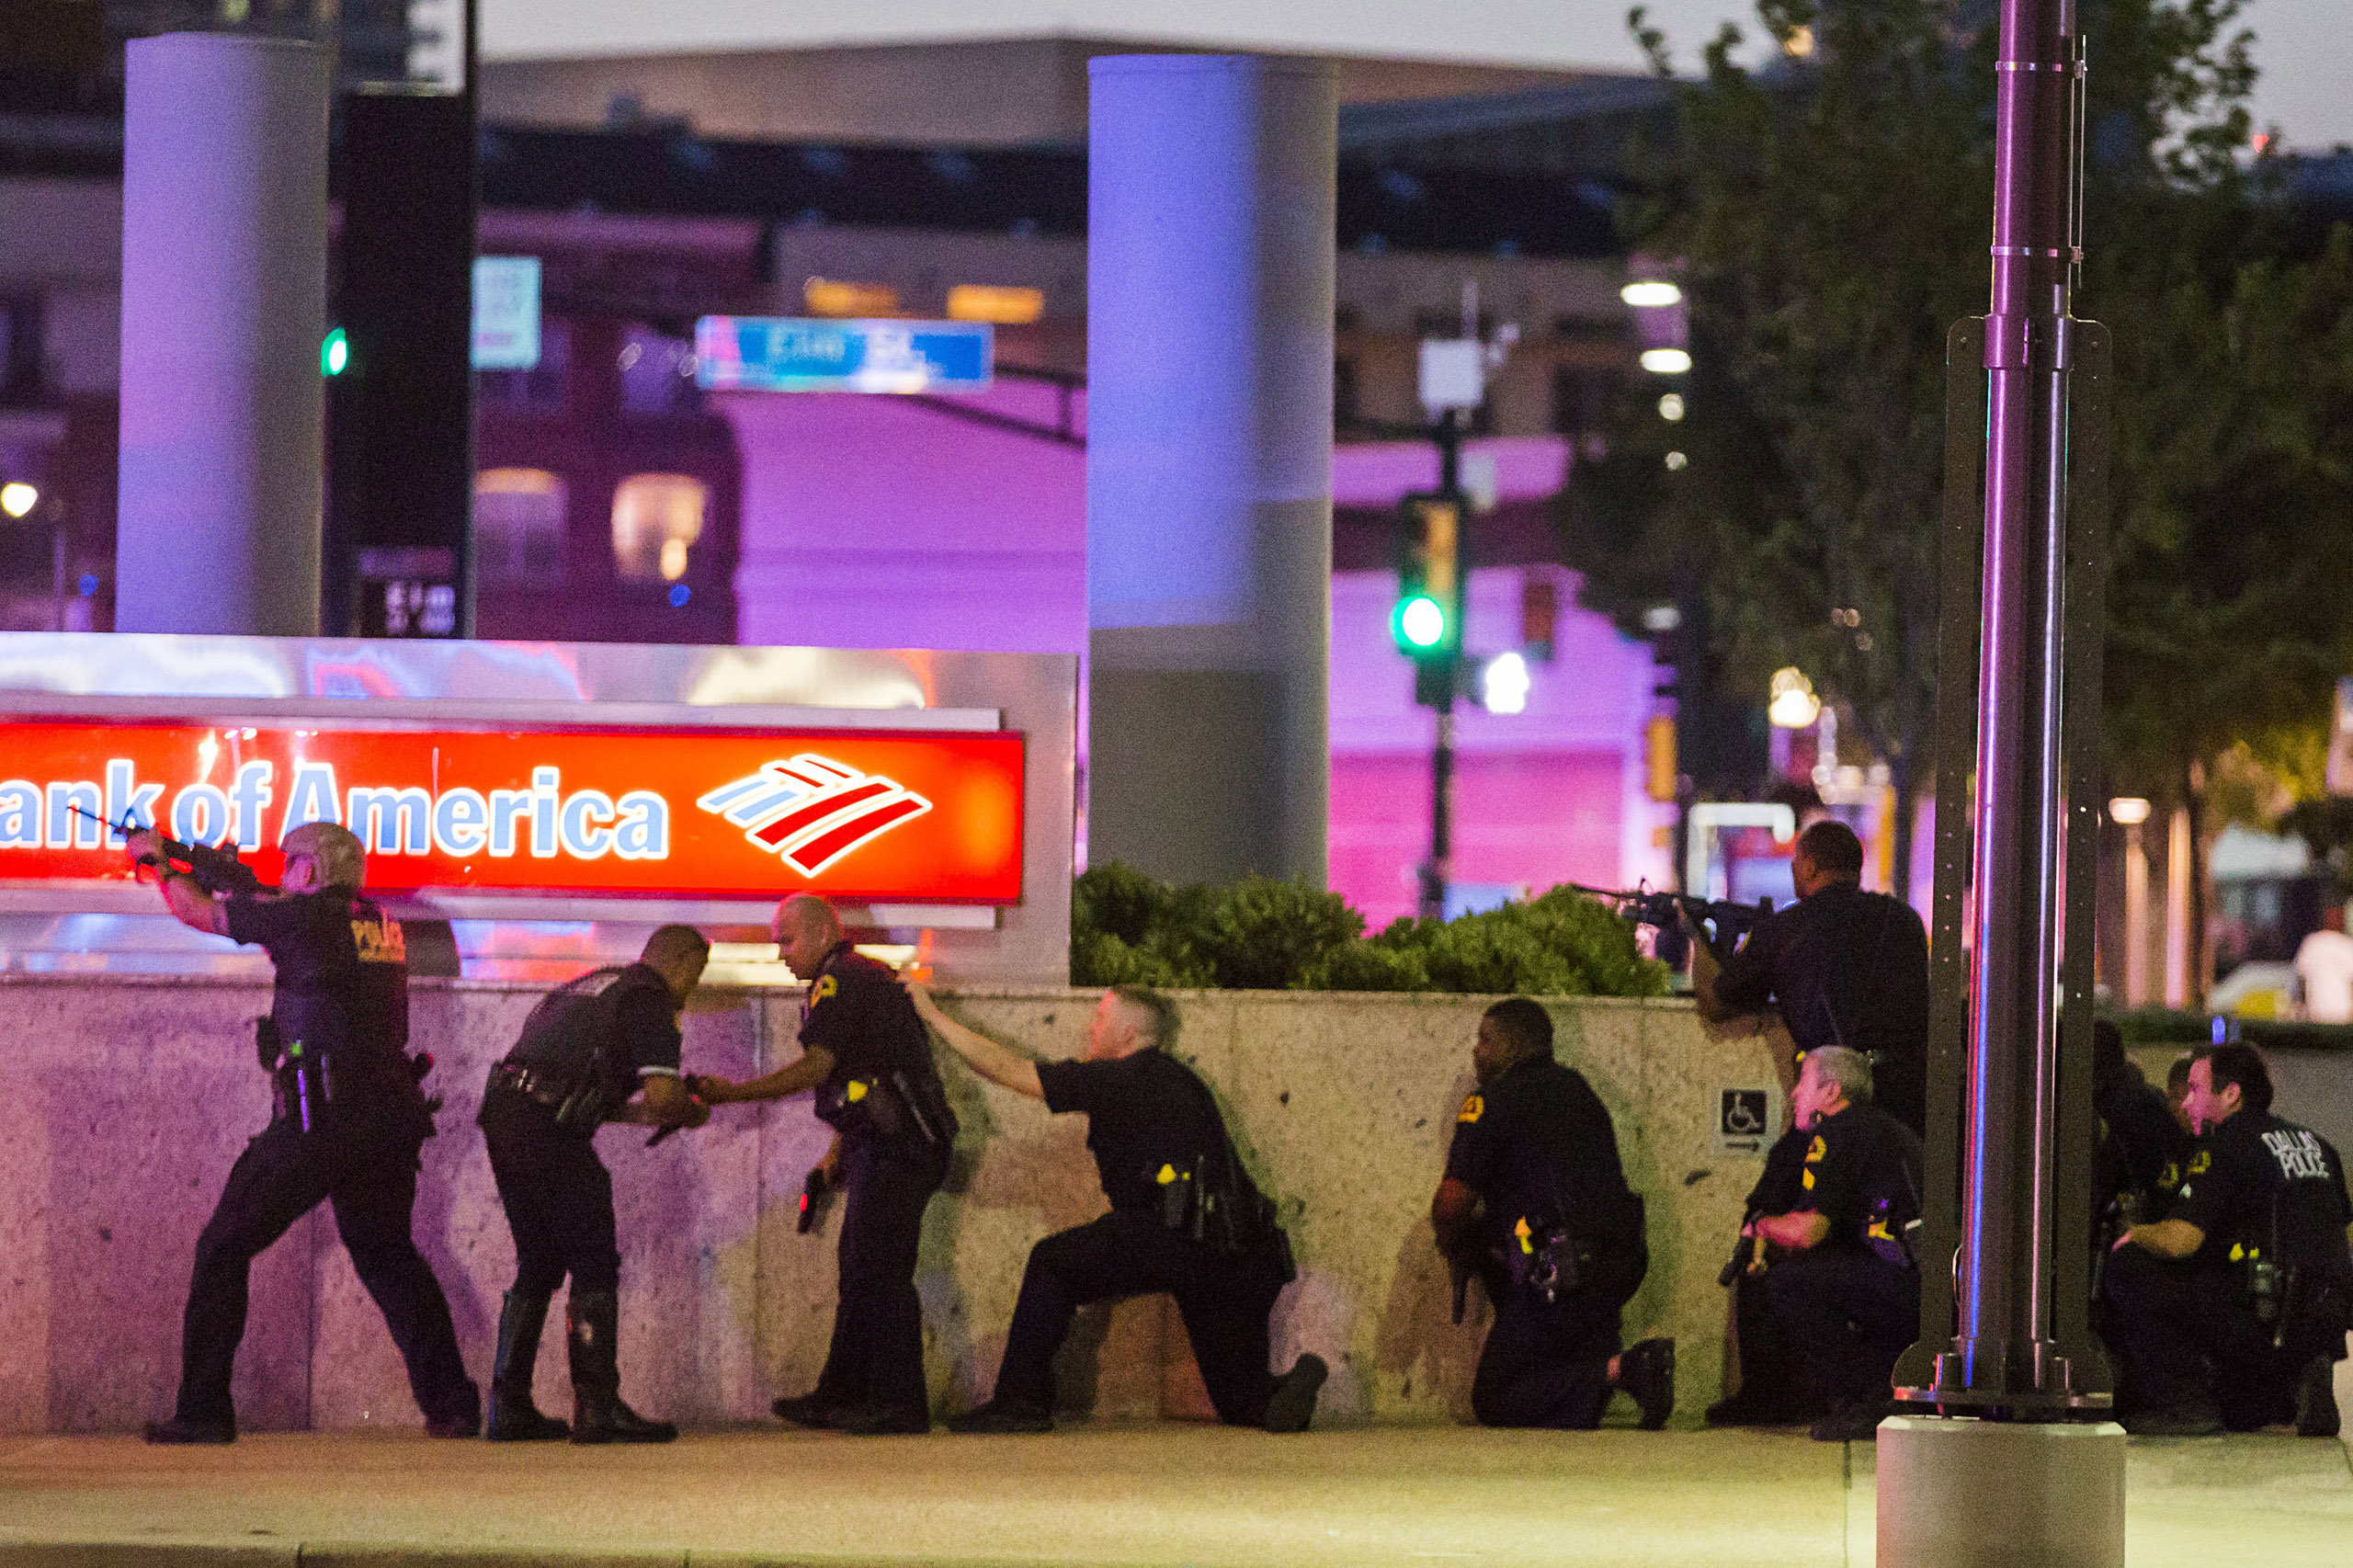 Dallas Police respond after shots were fired at a Black Lives Matter rally in downtown Dallas on July 7, 2016.